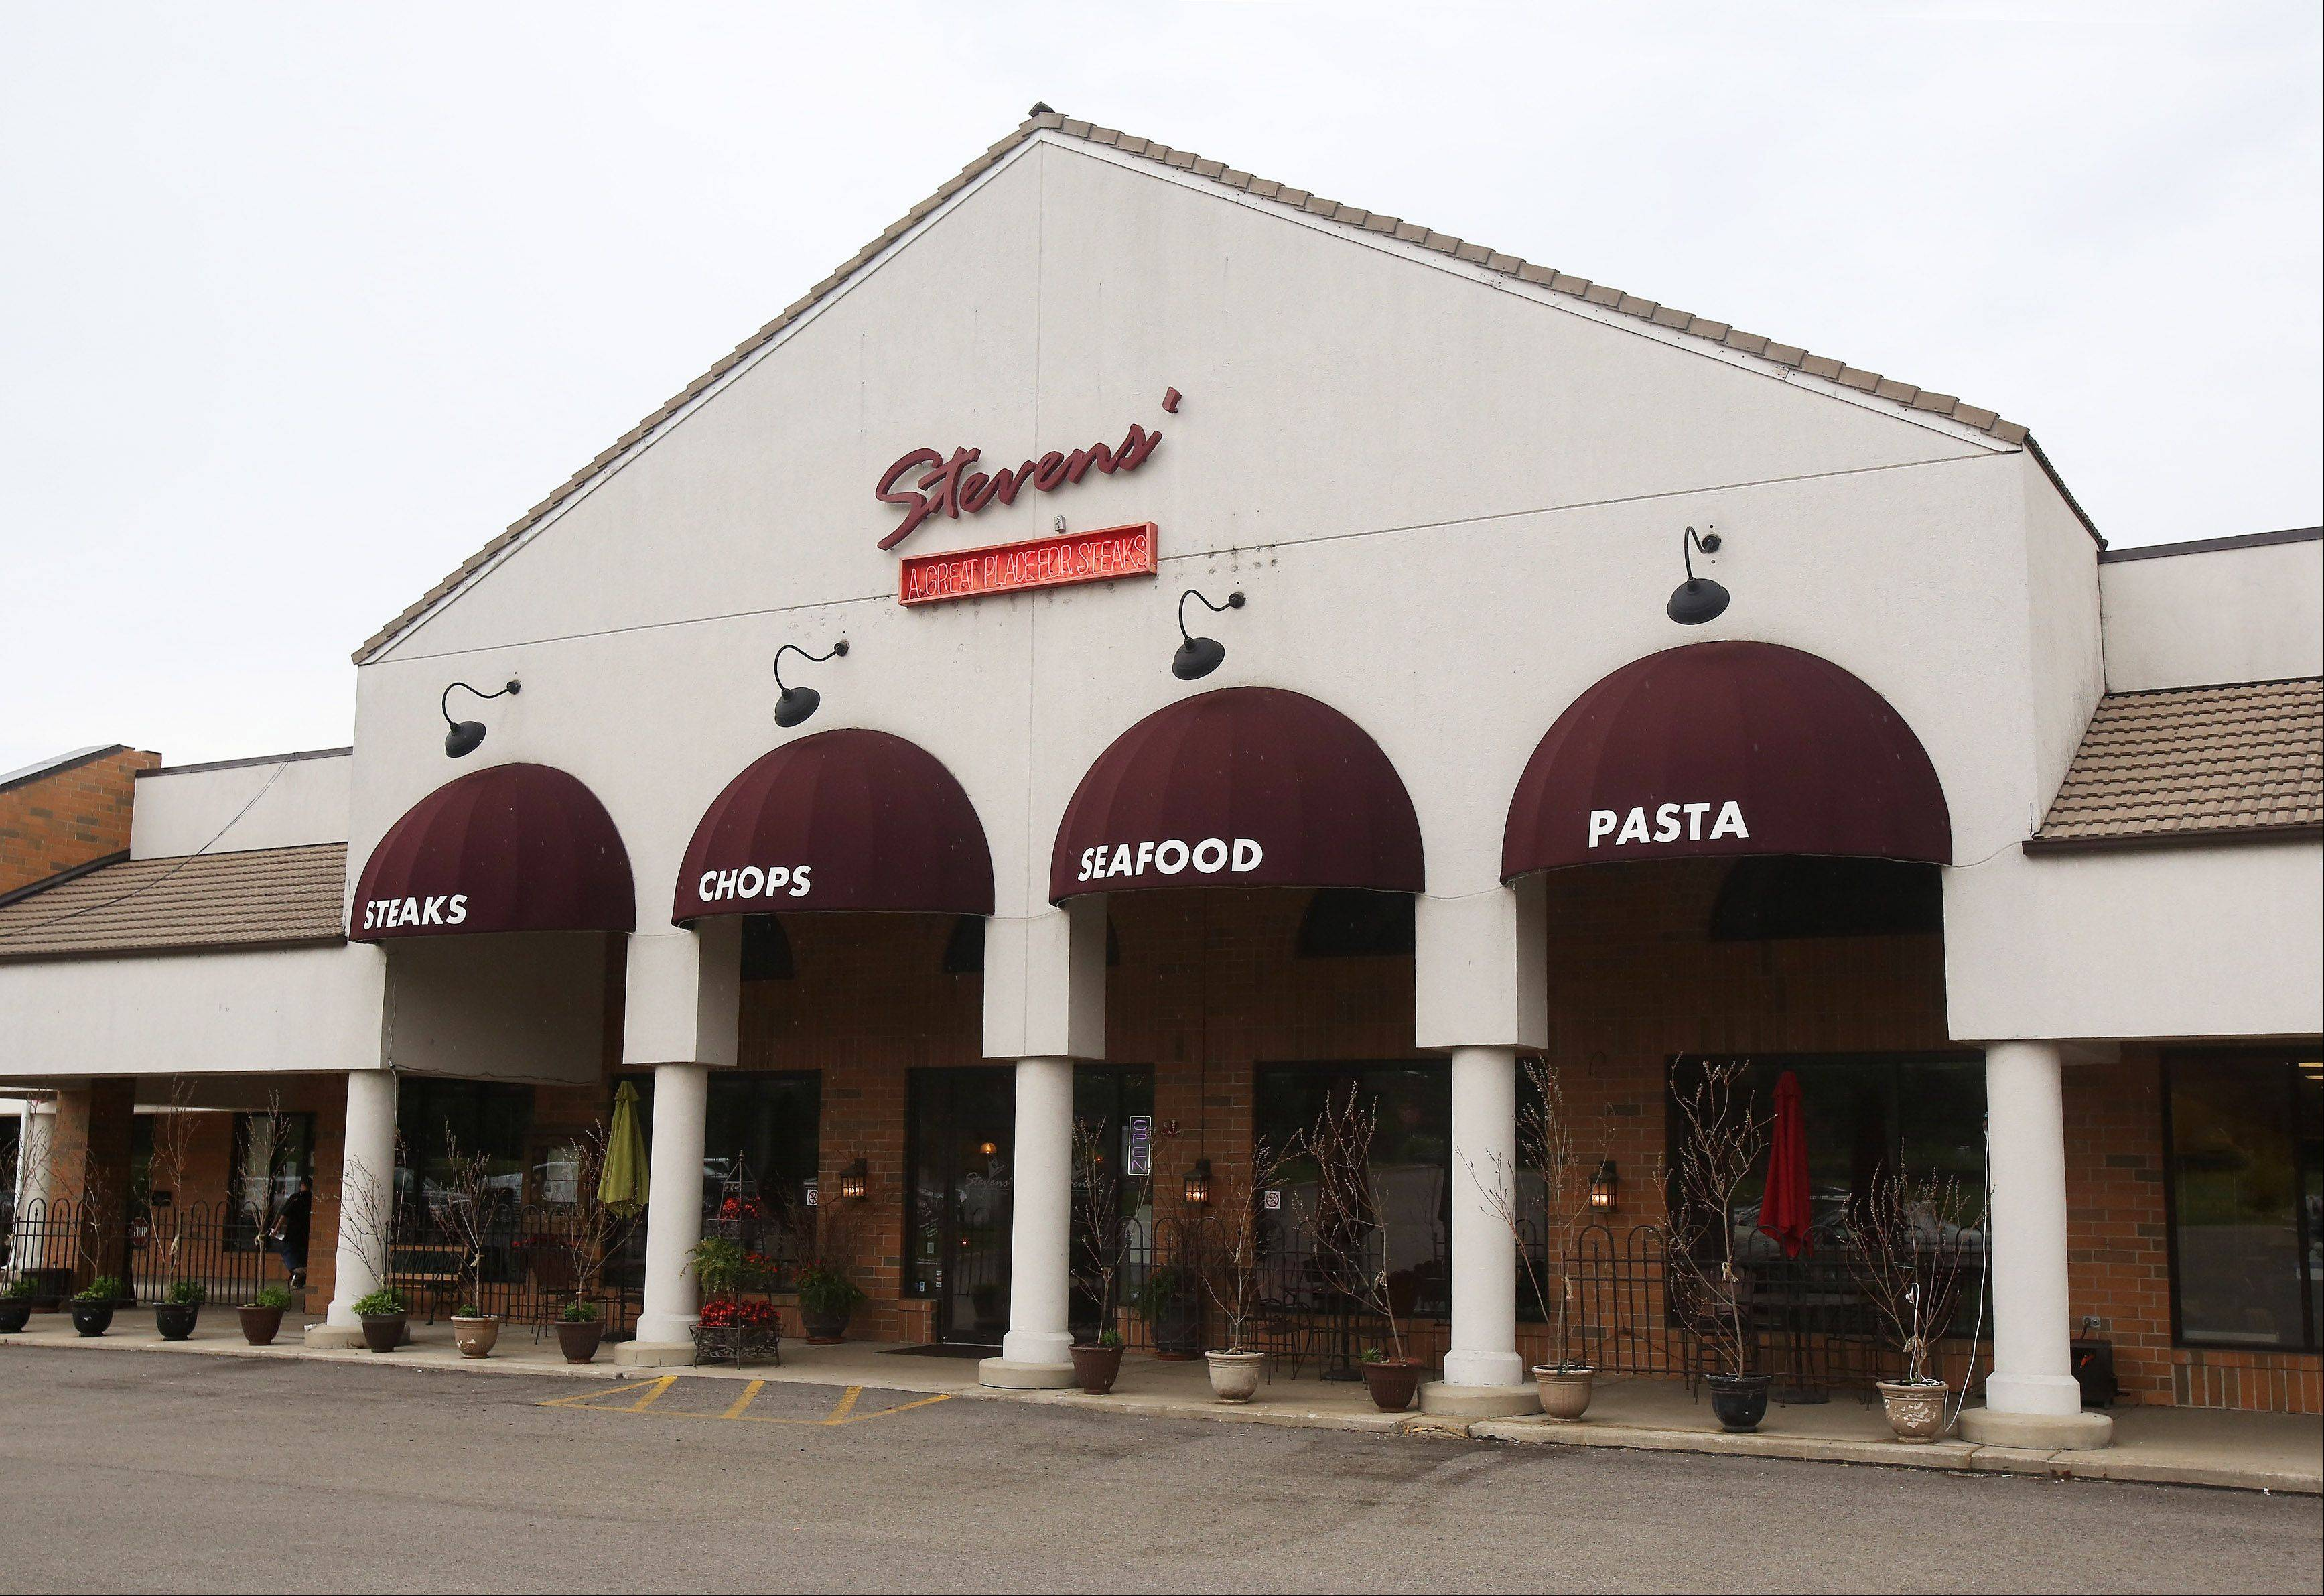 Stevens' specializes in steaks, seafood and pasta.